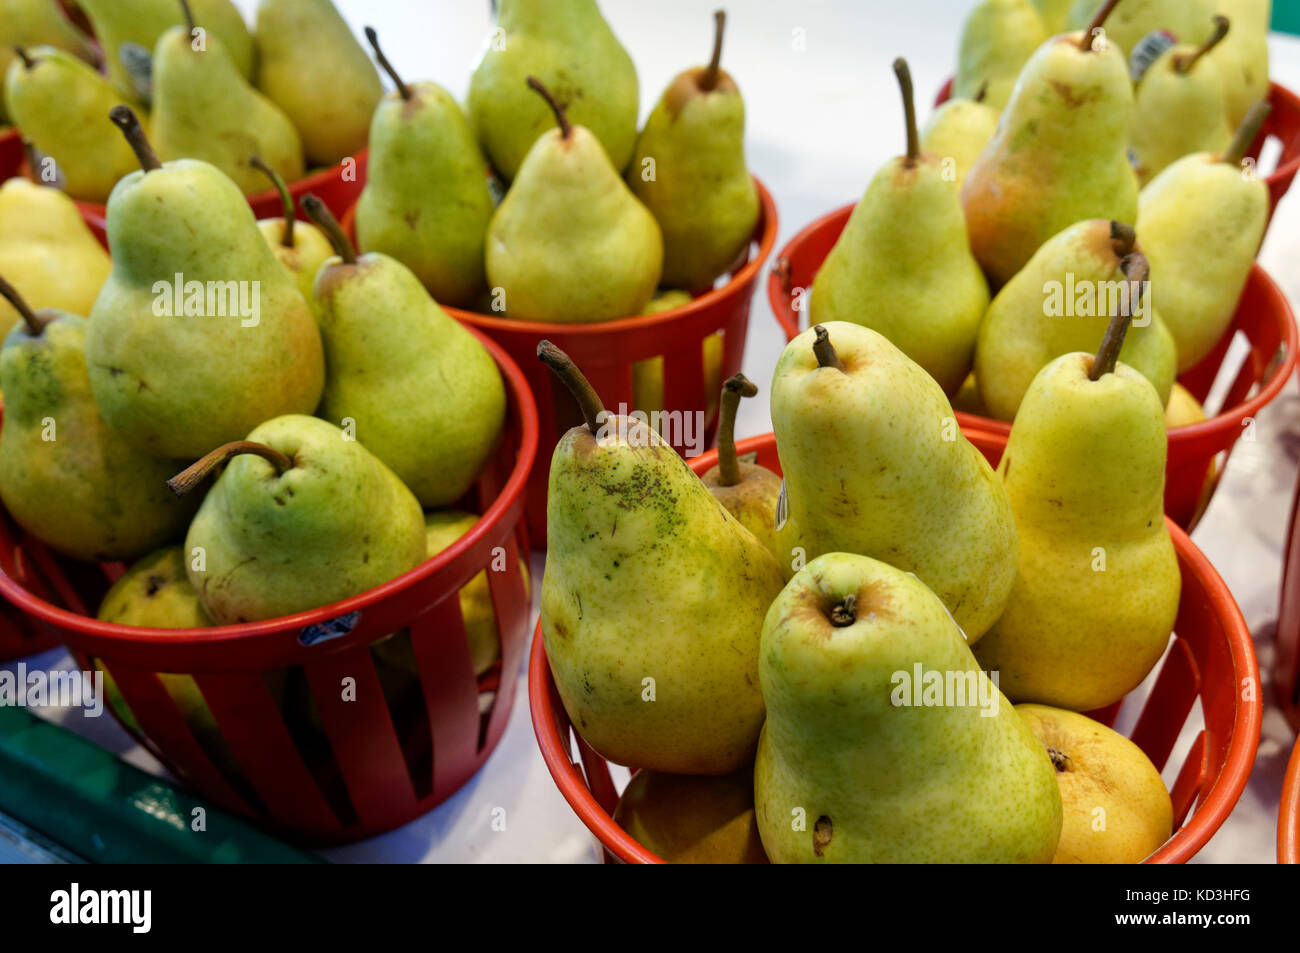 baskets-of-quebec-grown-pears-for-sale-i